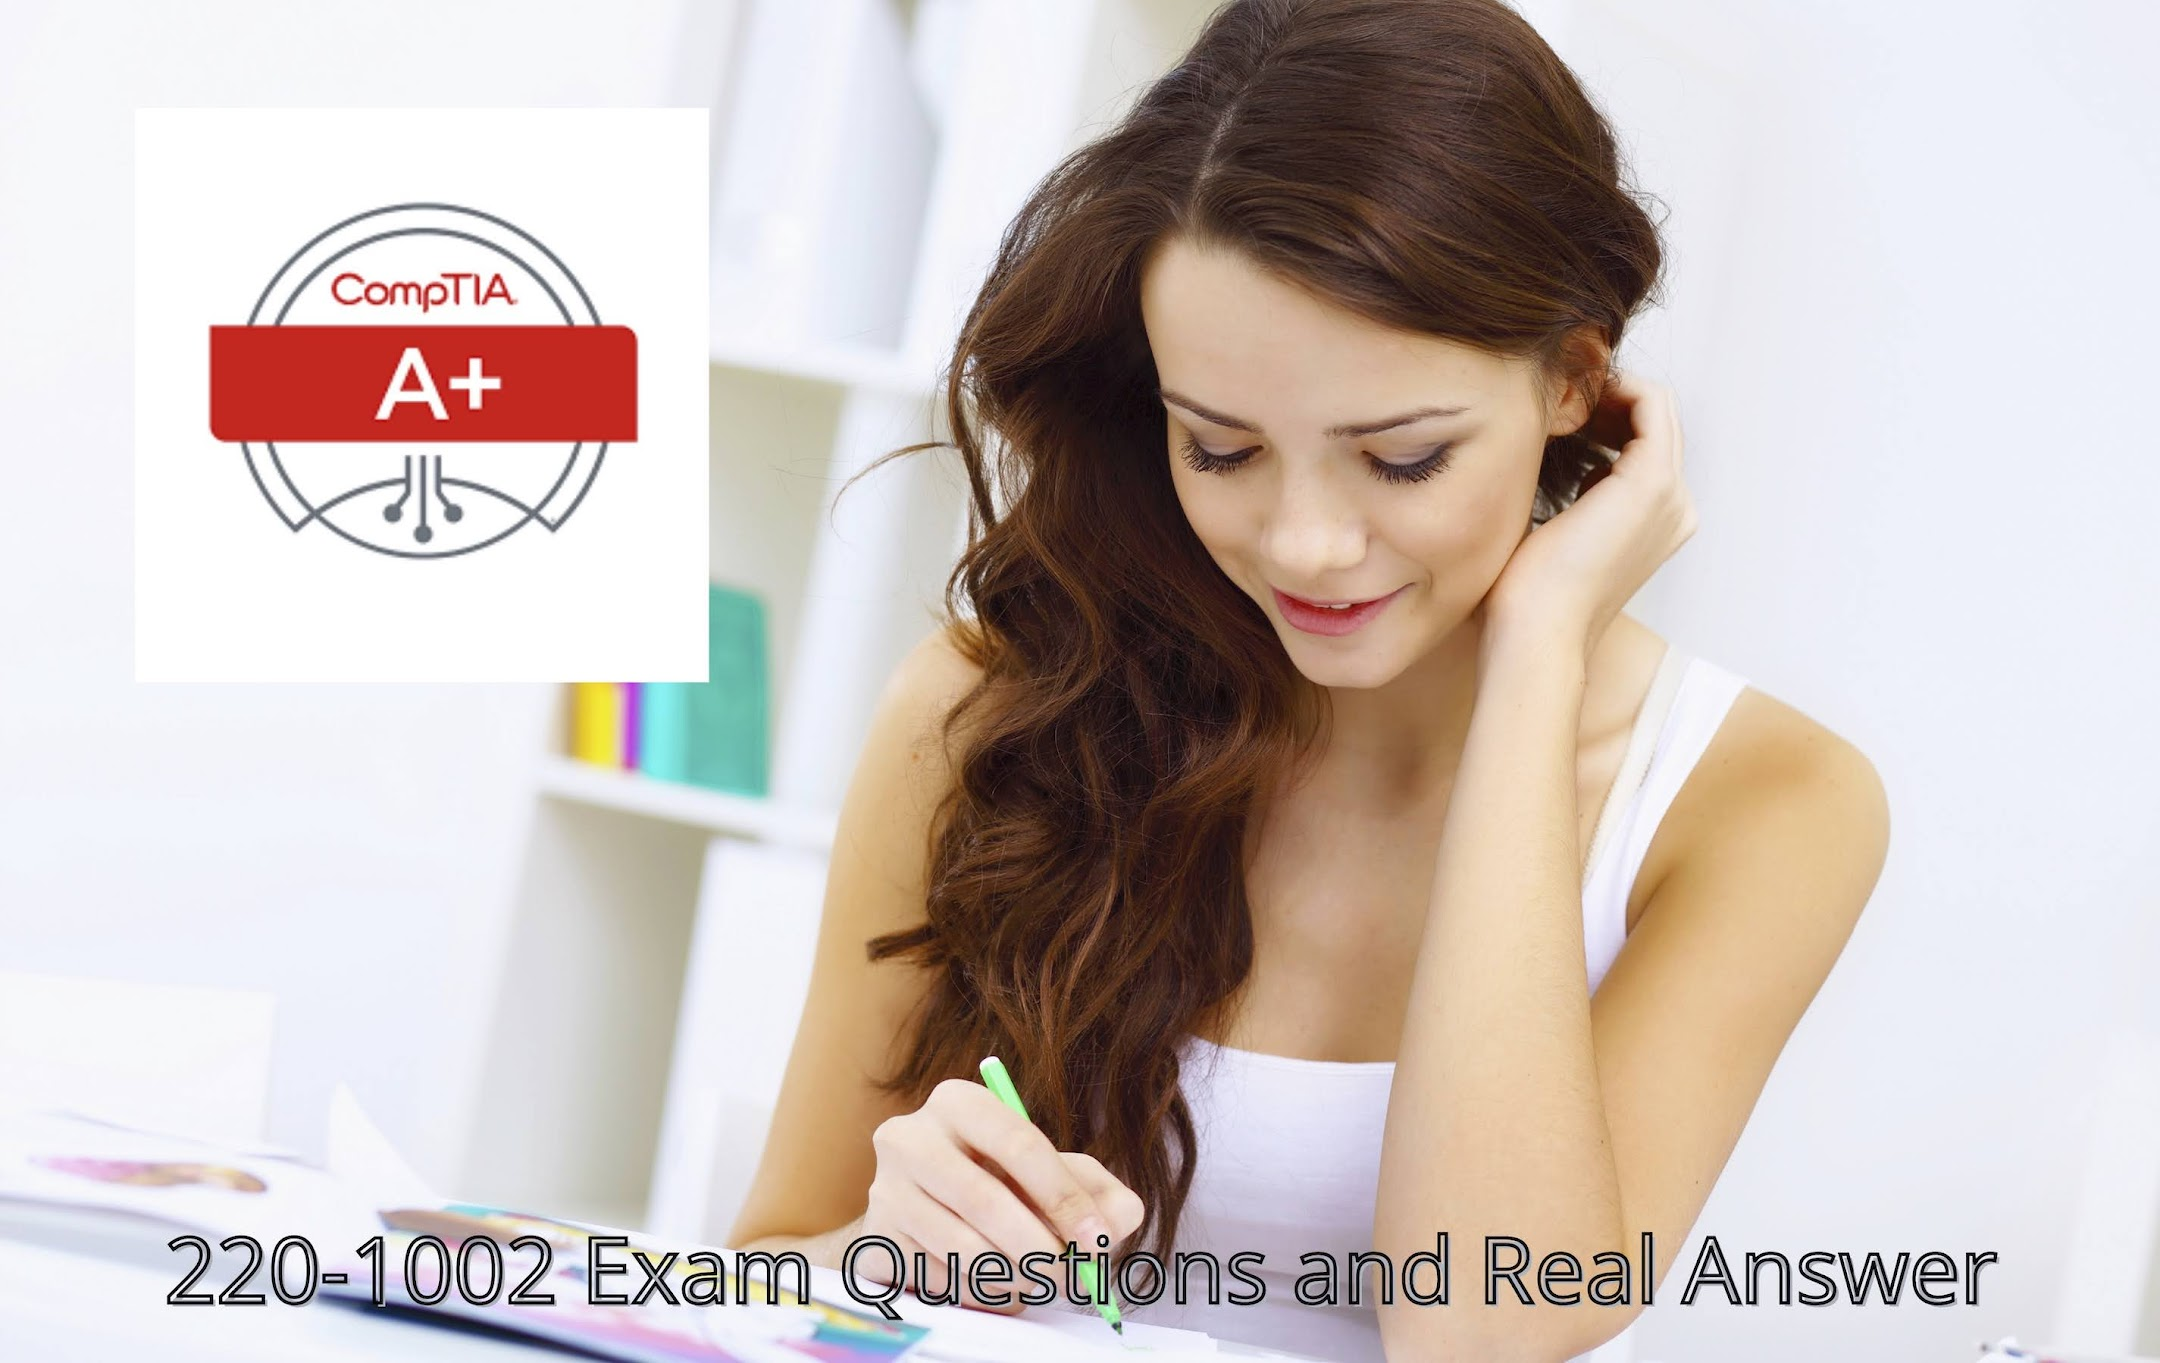 CompTIA A+ Core 2 (220-1002) Exam Questions and Answers